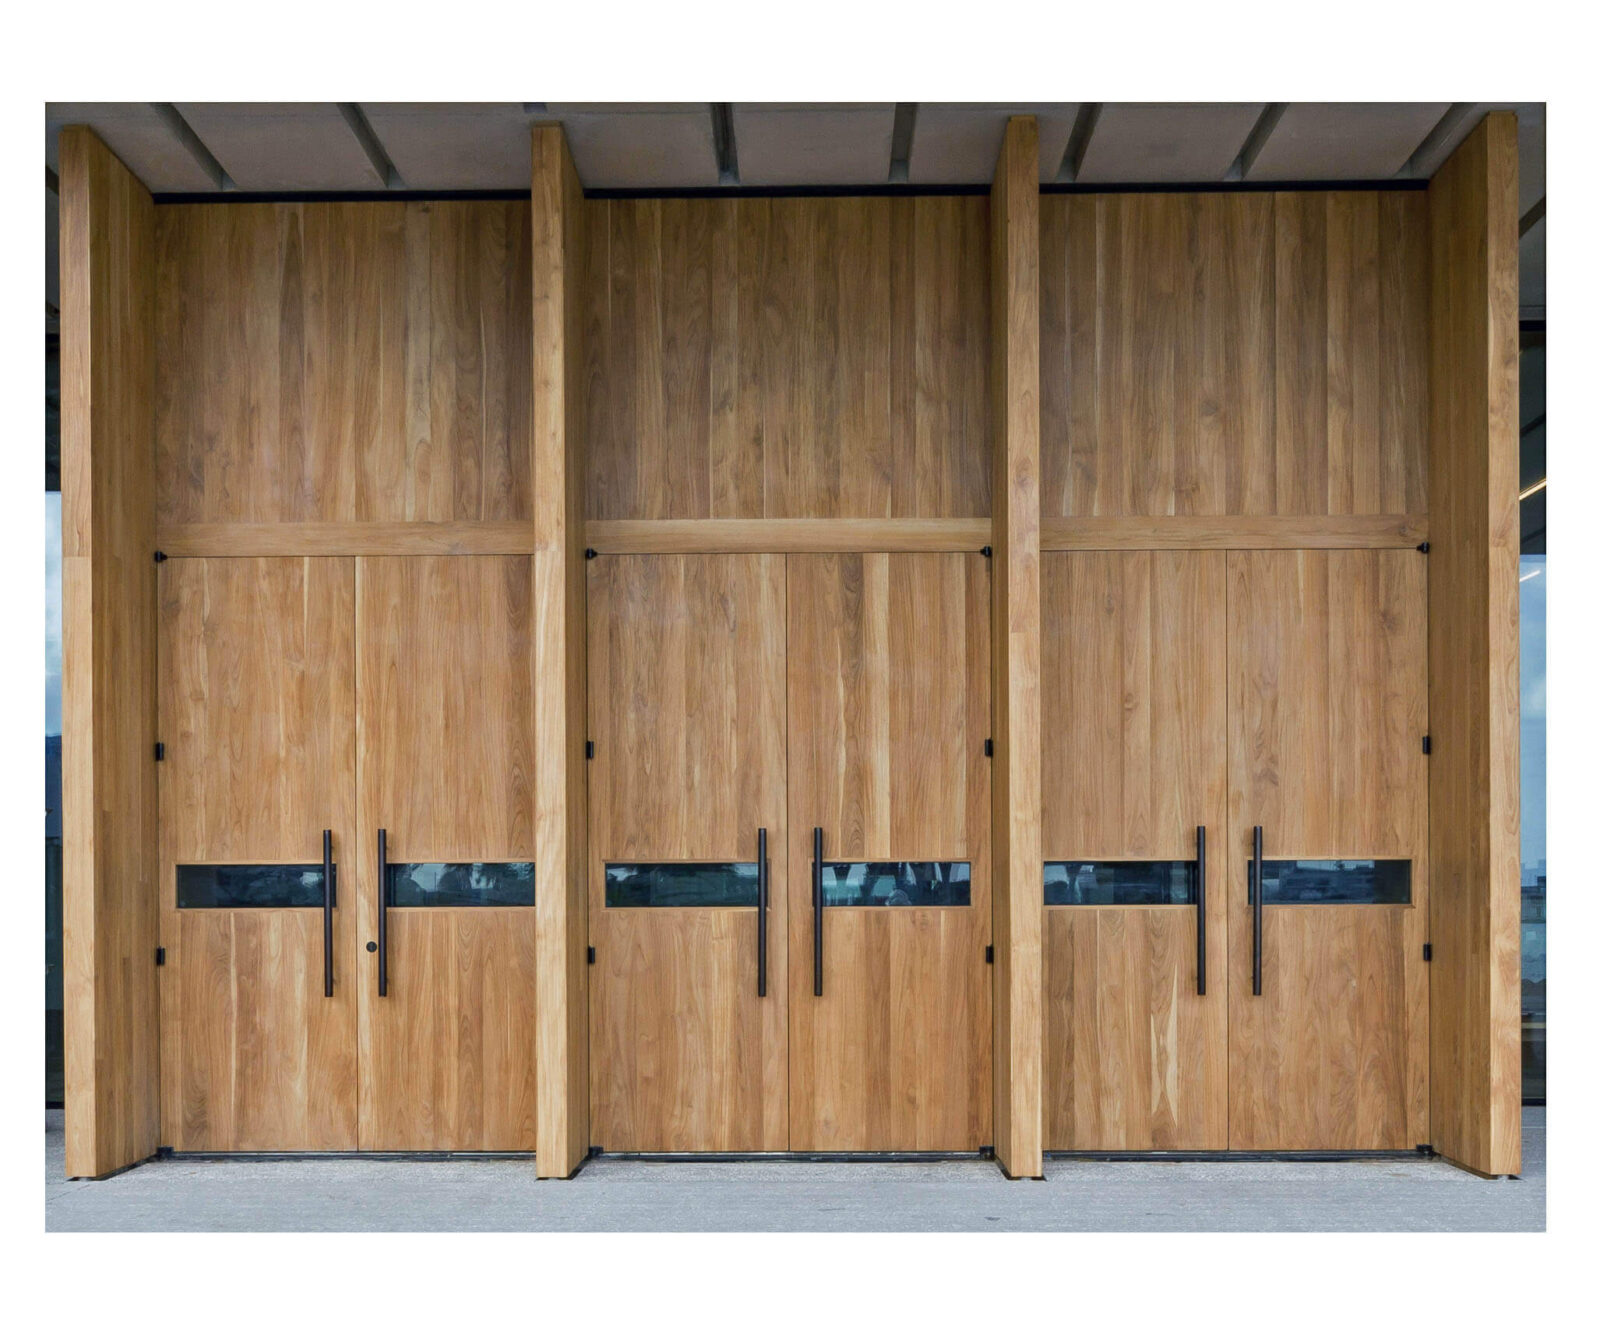 TEAK ENTRY DOORS. MIAMI PEREZ ART MUSEUM